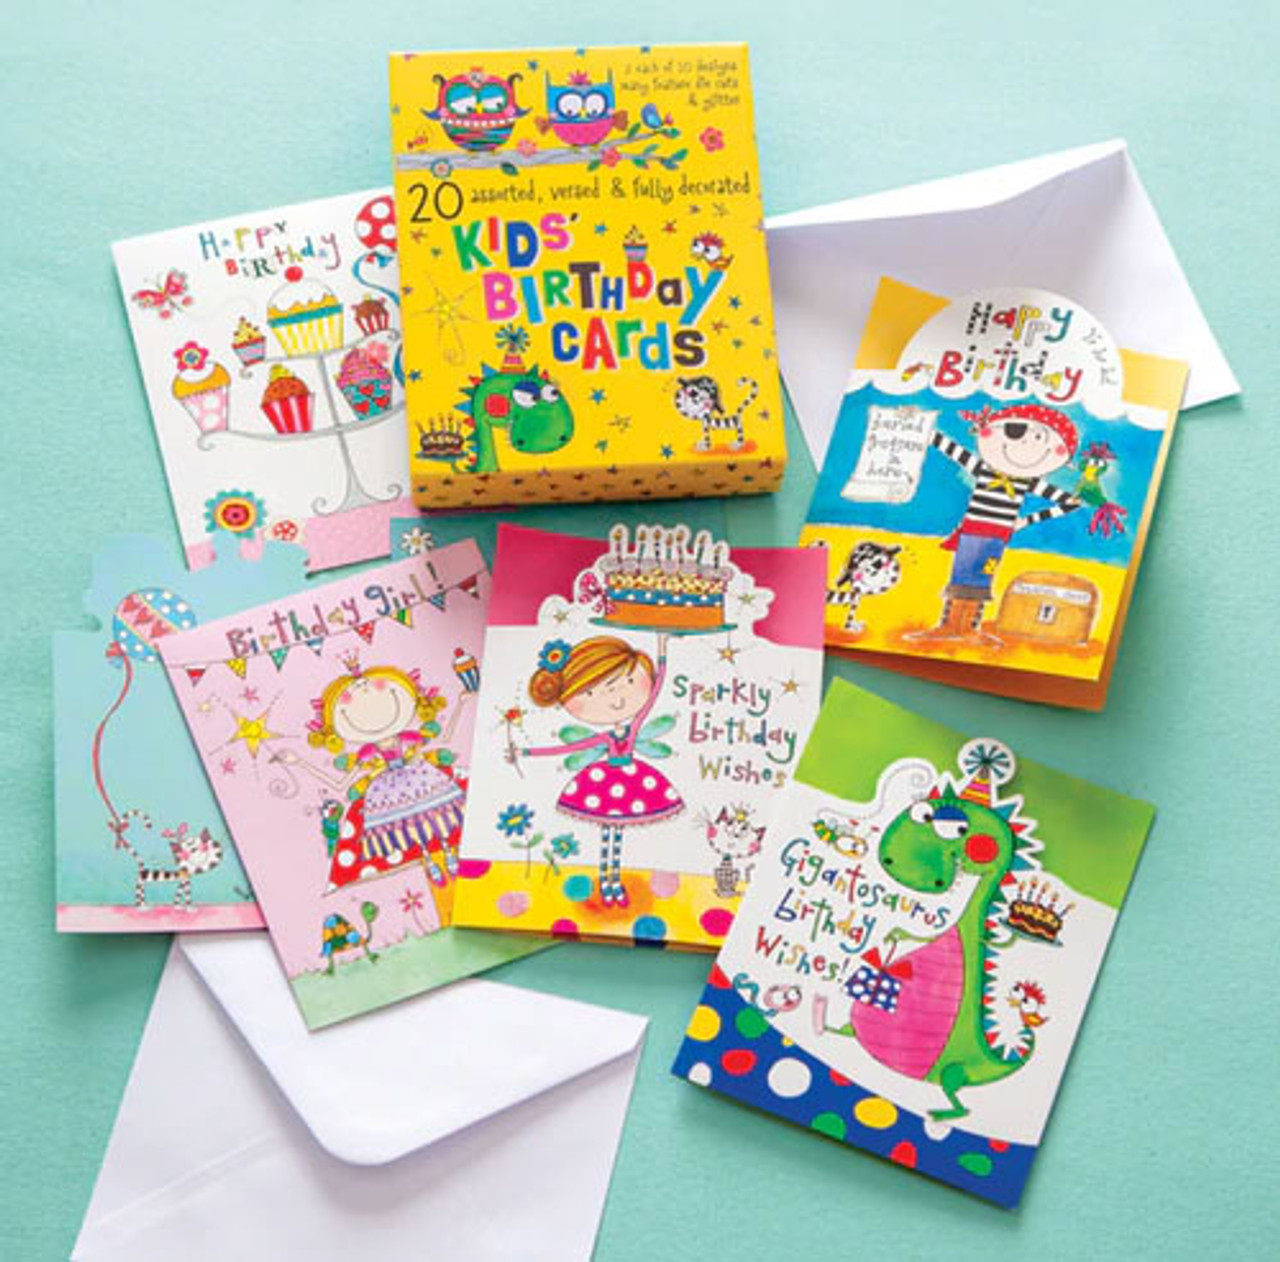 Magnificent Kids Birthday Card Assortment Hjba21927 Shopittakestwo Personalised Birthday Cards Paralily Jamesorg